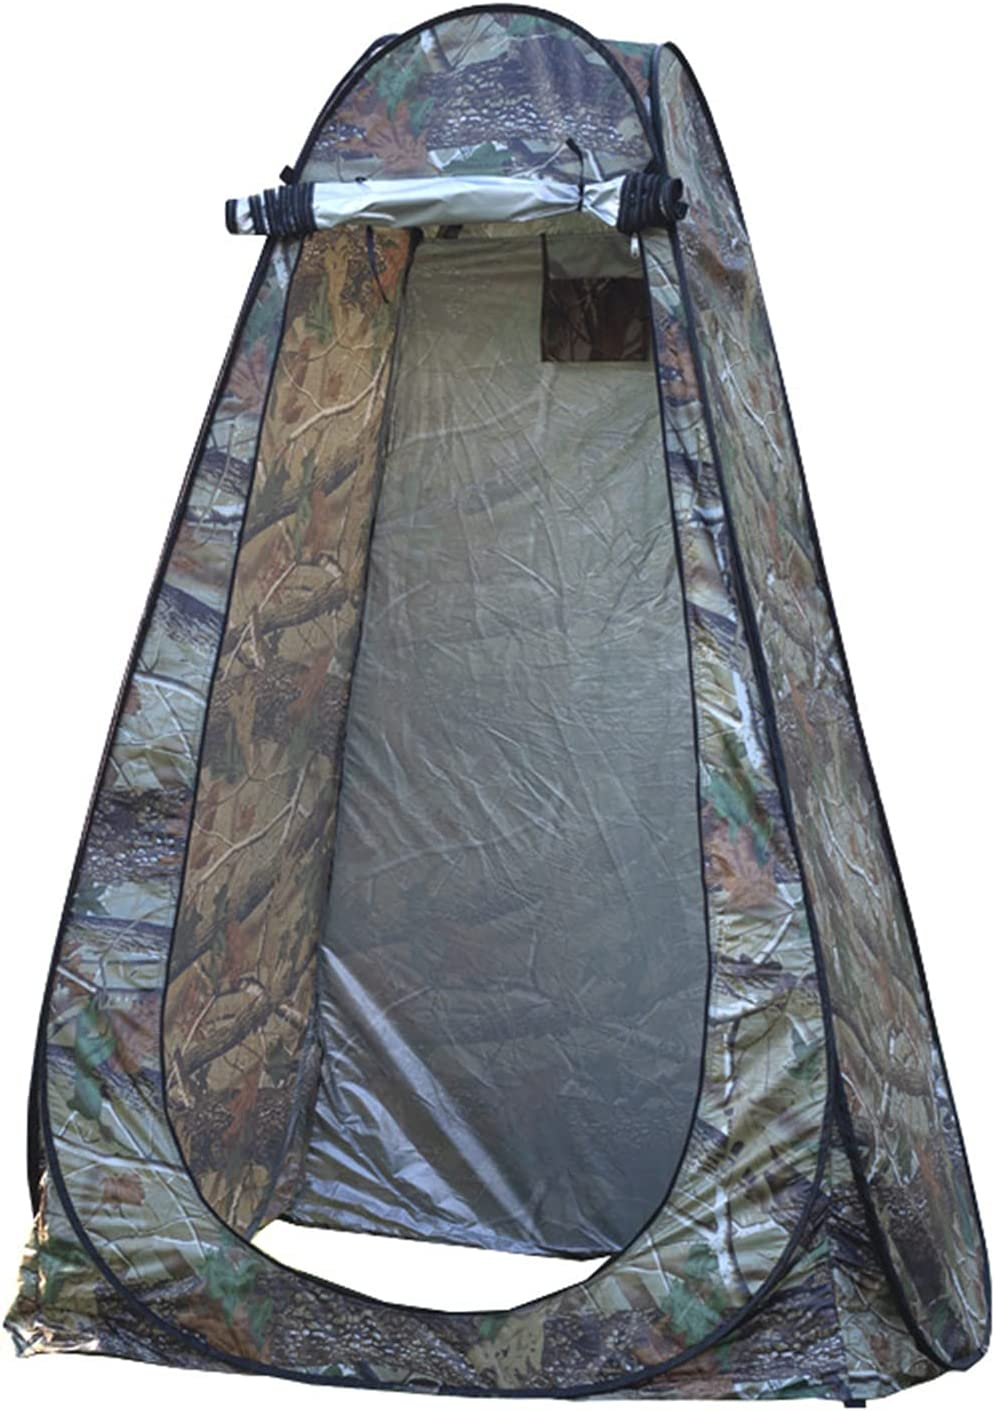 New popularity Instant Portable Max 90% OFF Outdoor Shower Tent Lightweight and Toil Sturdy